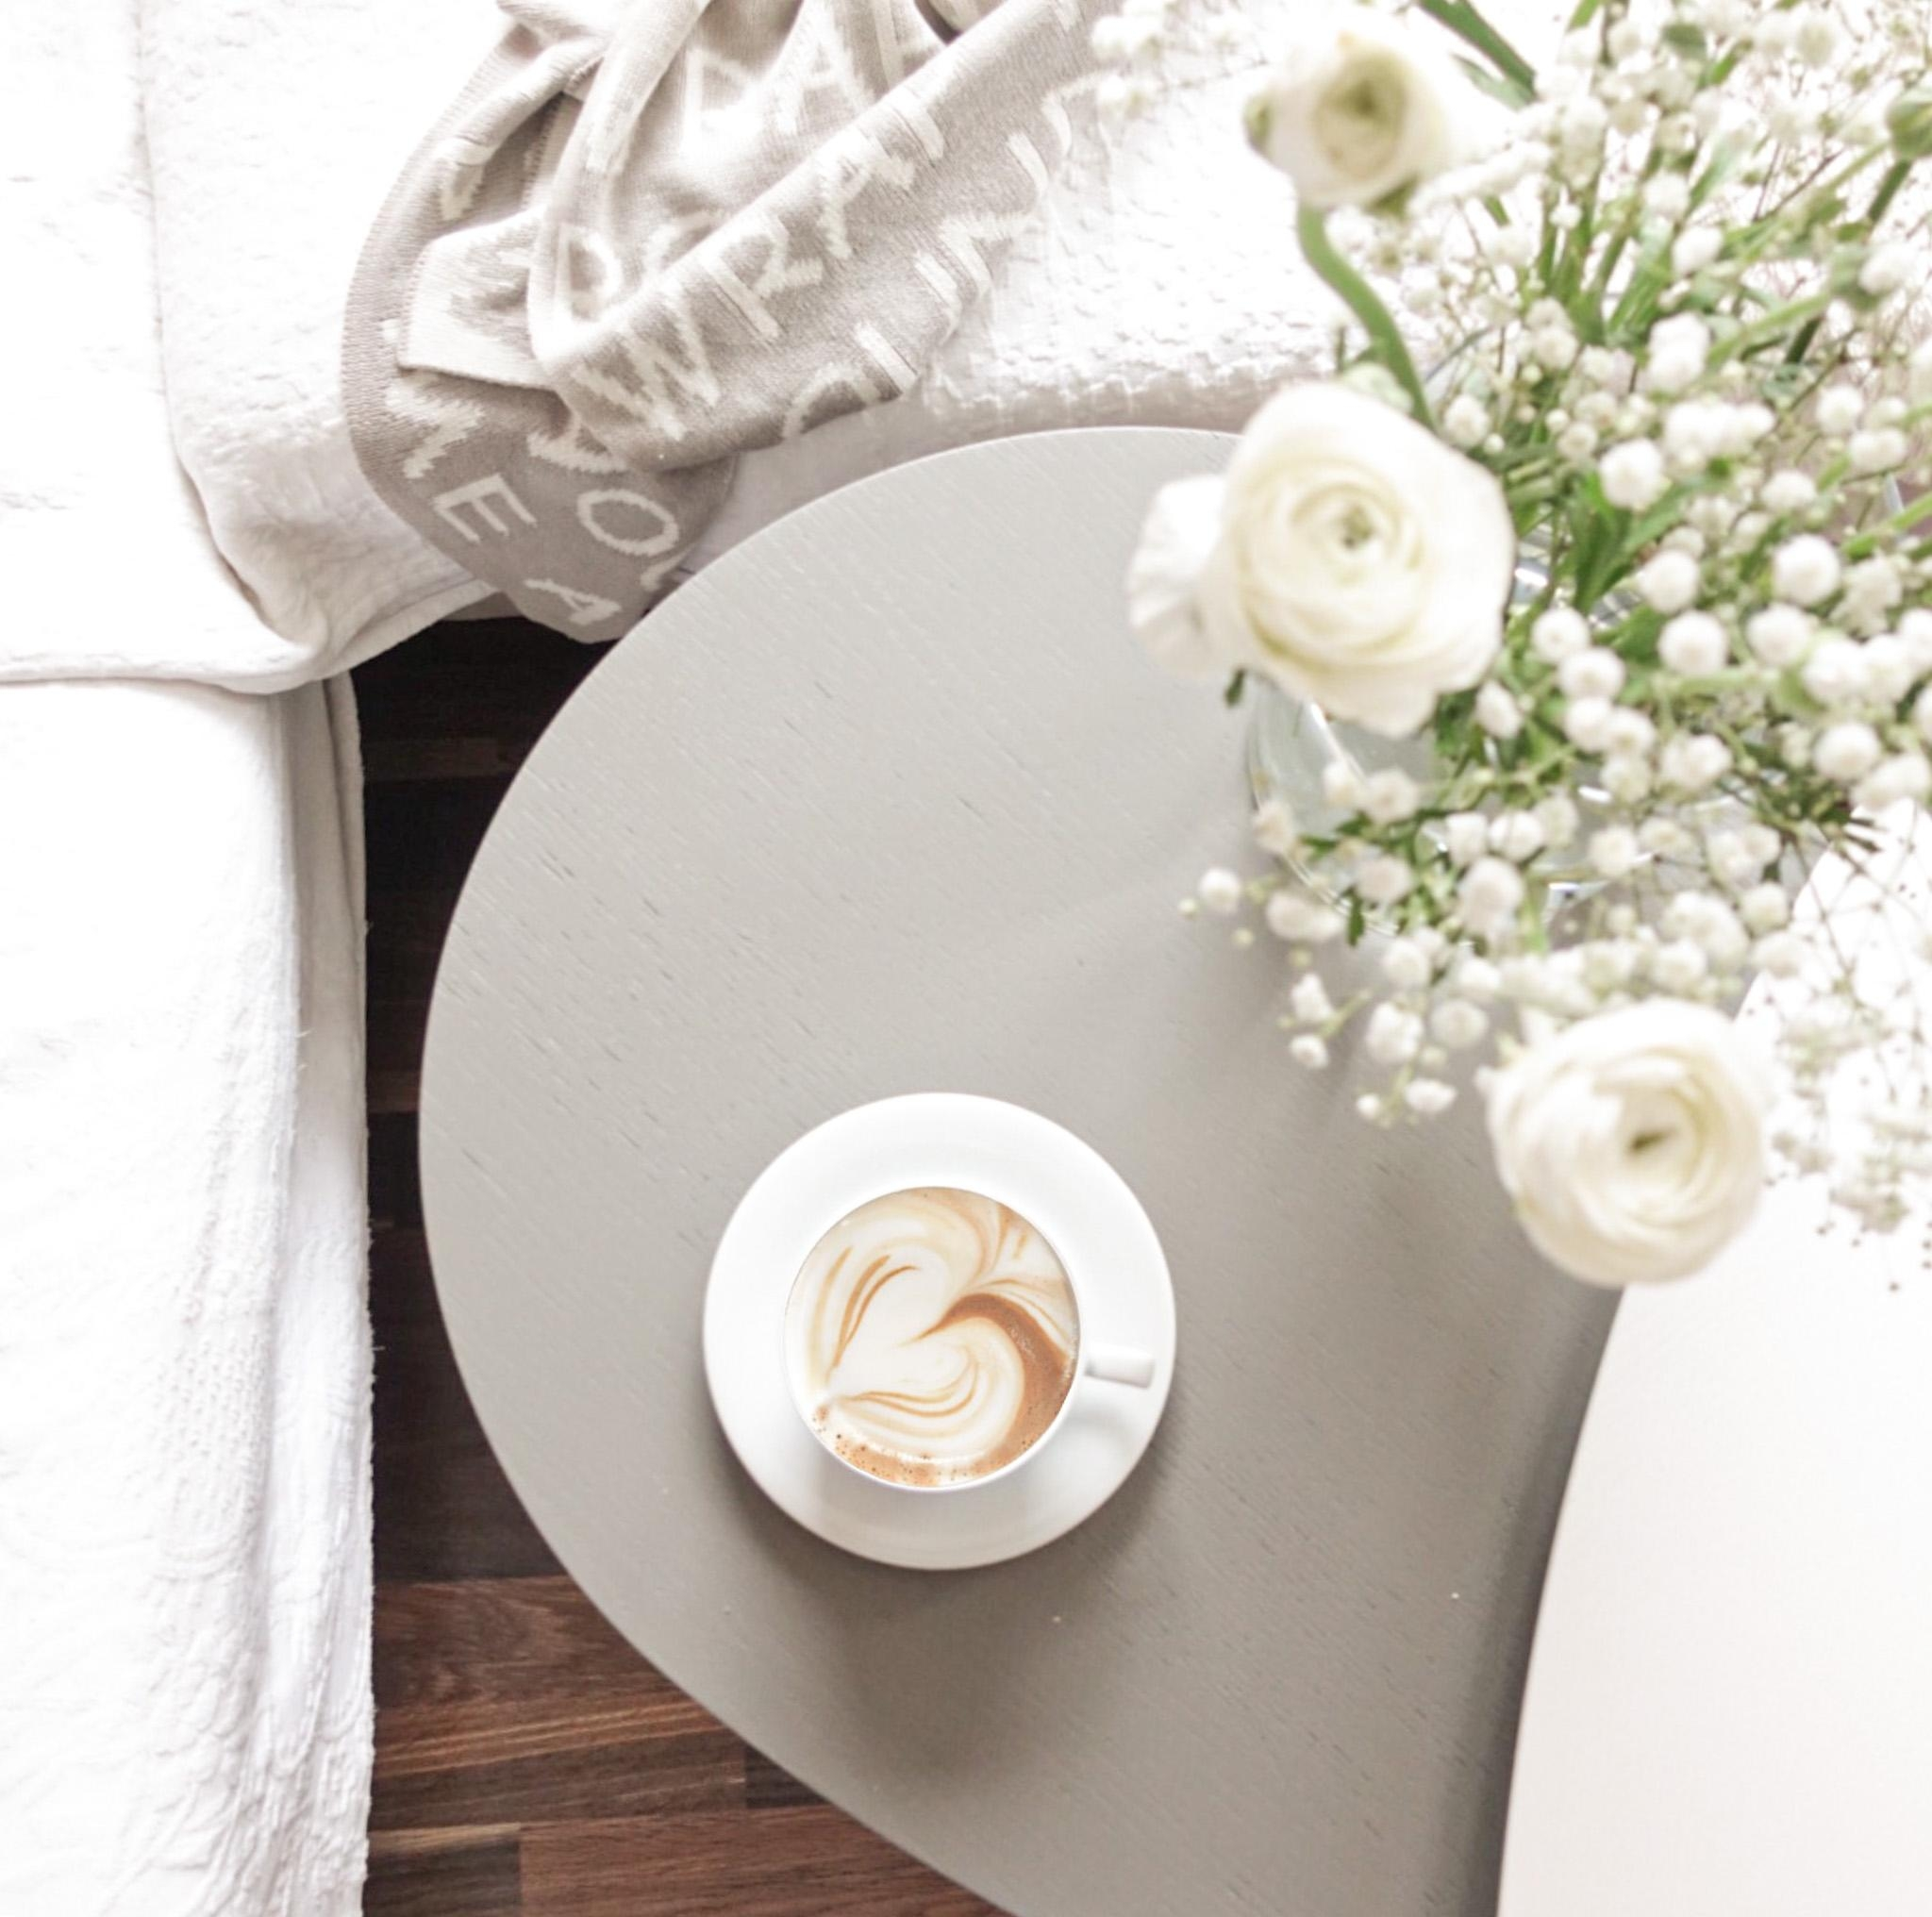 Happy monday! #happymonday #coffeelover #interiorstyle